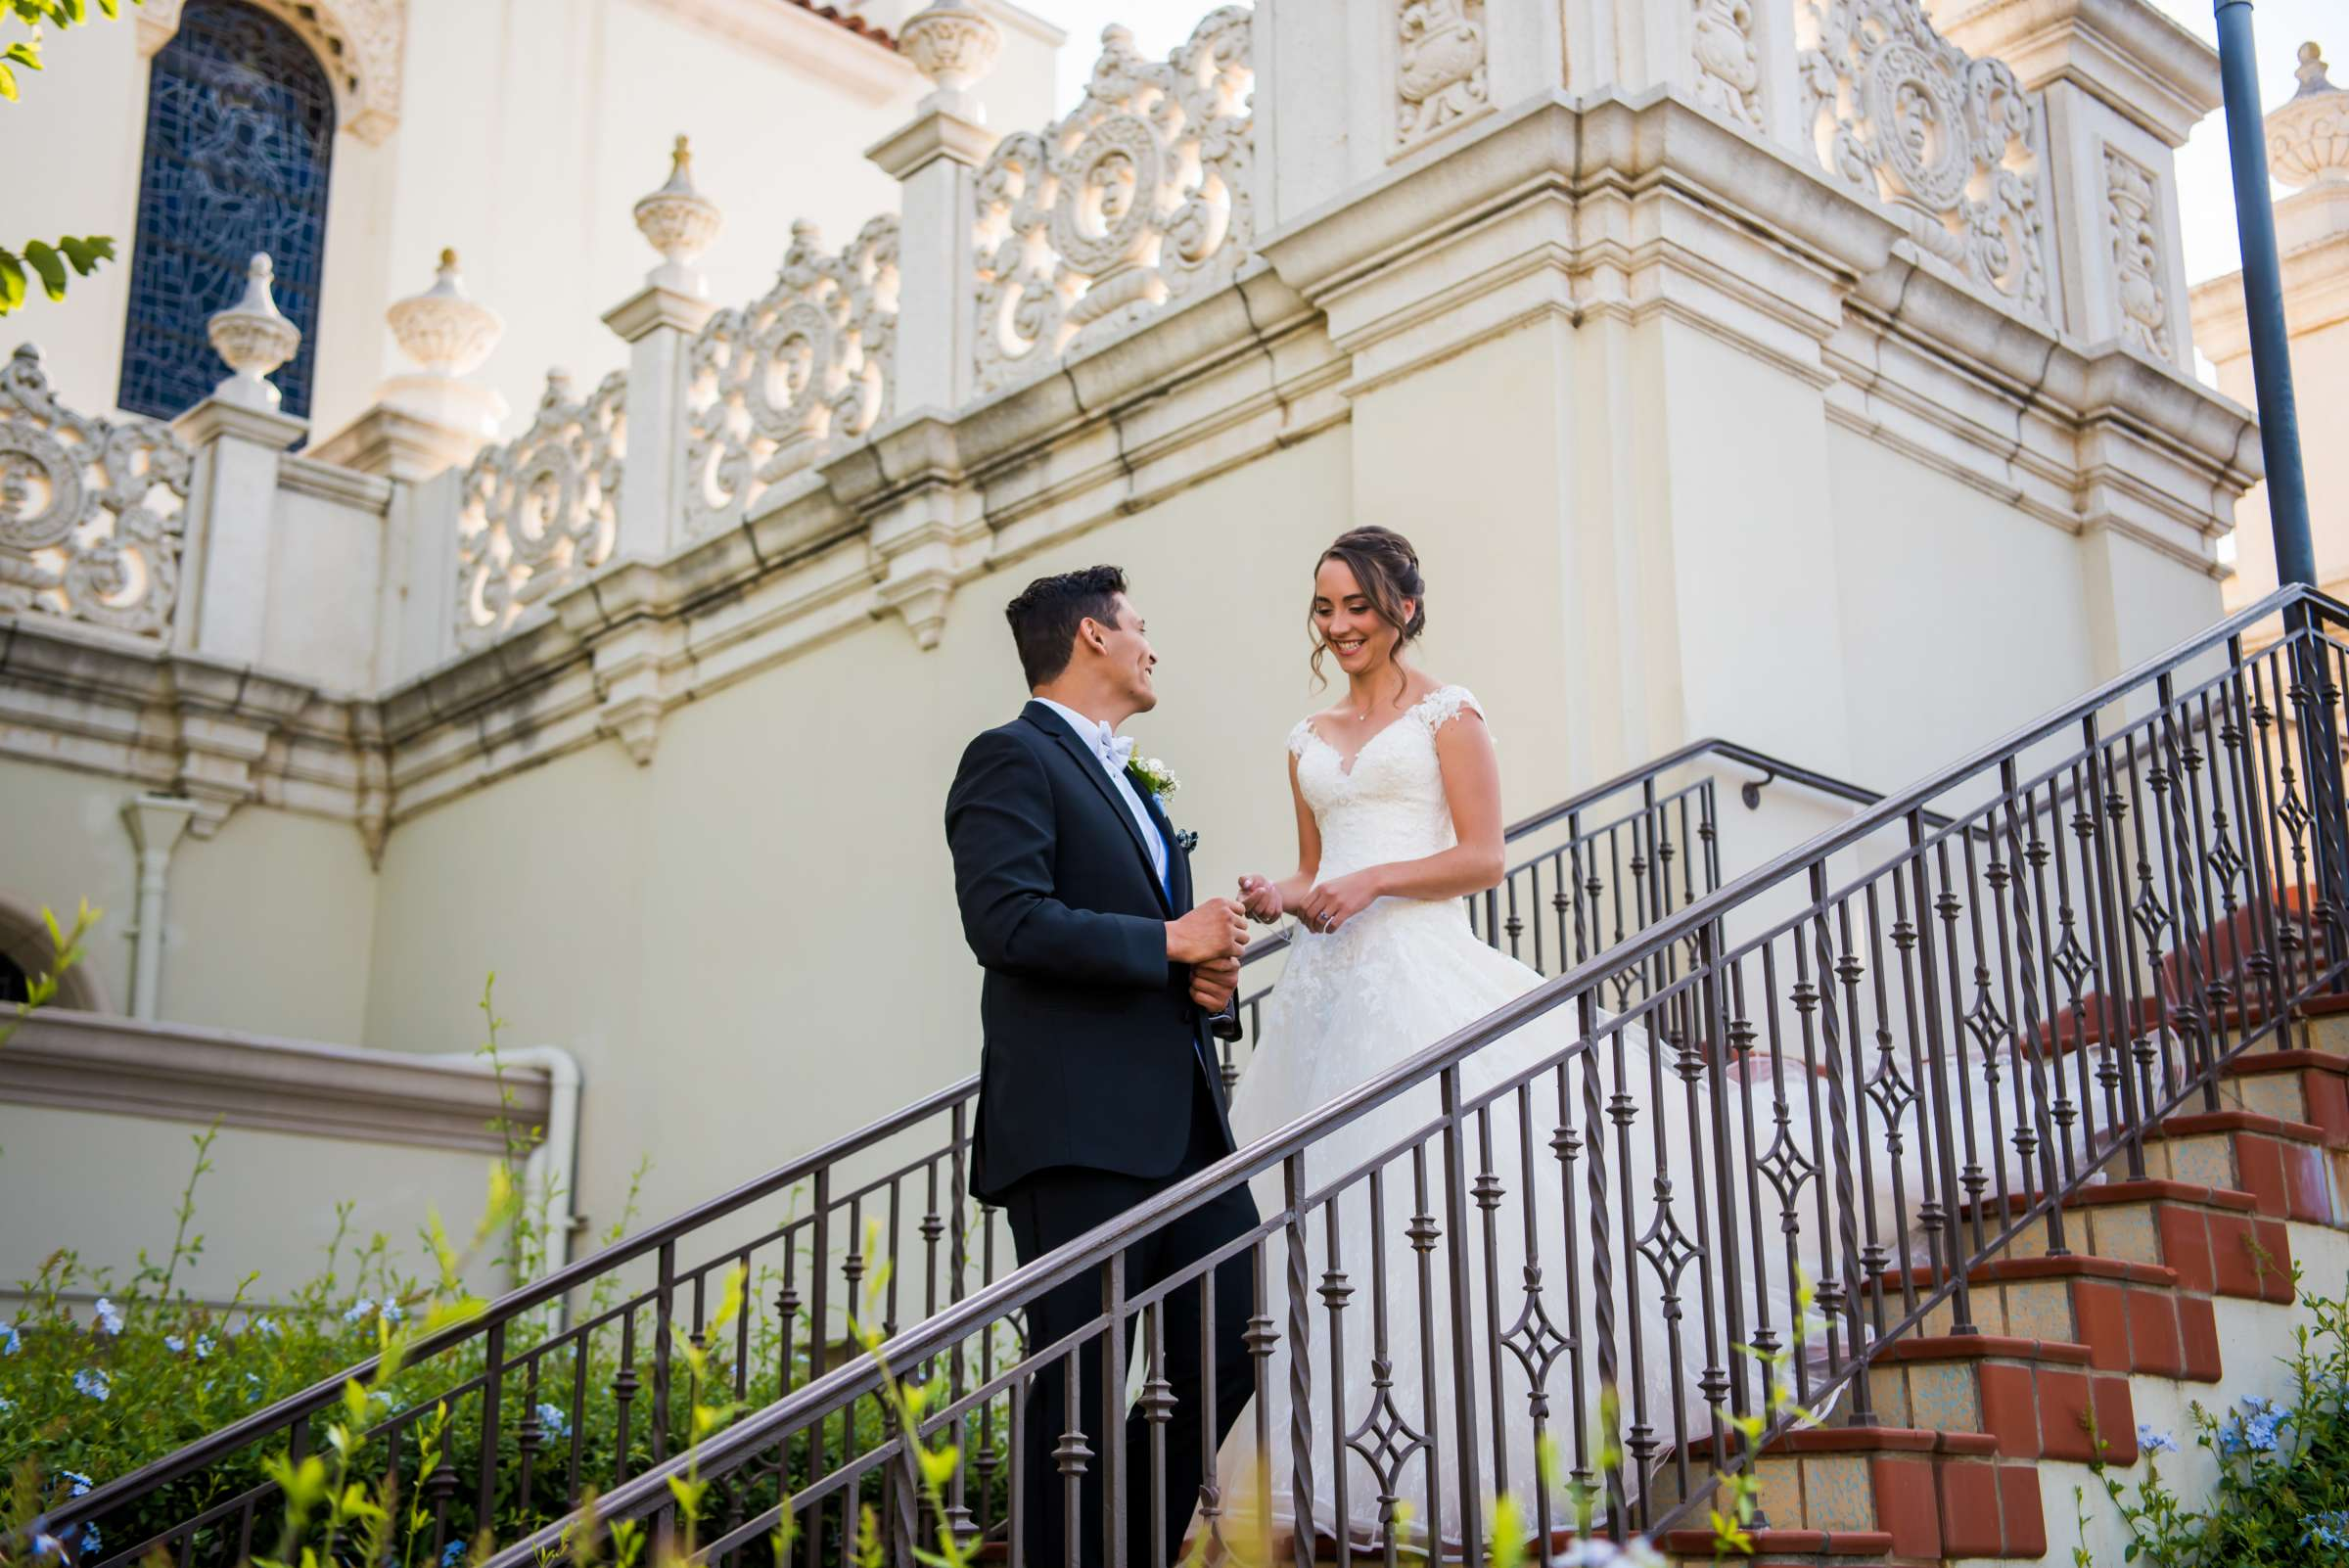 The Immaculata Wedding, Arianna and Jonah Wedding Photo #64 by True Photography